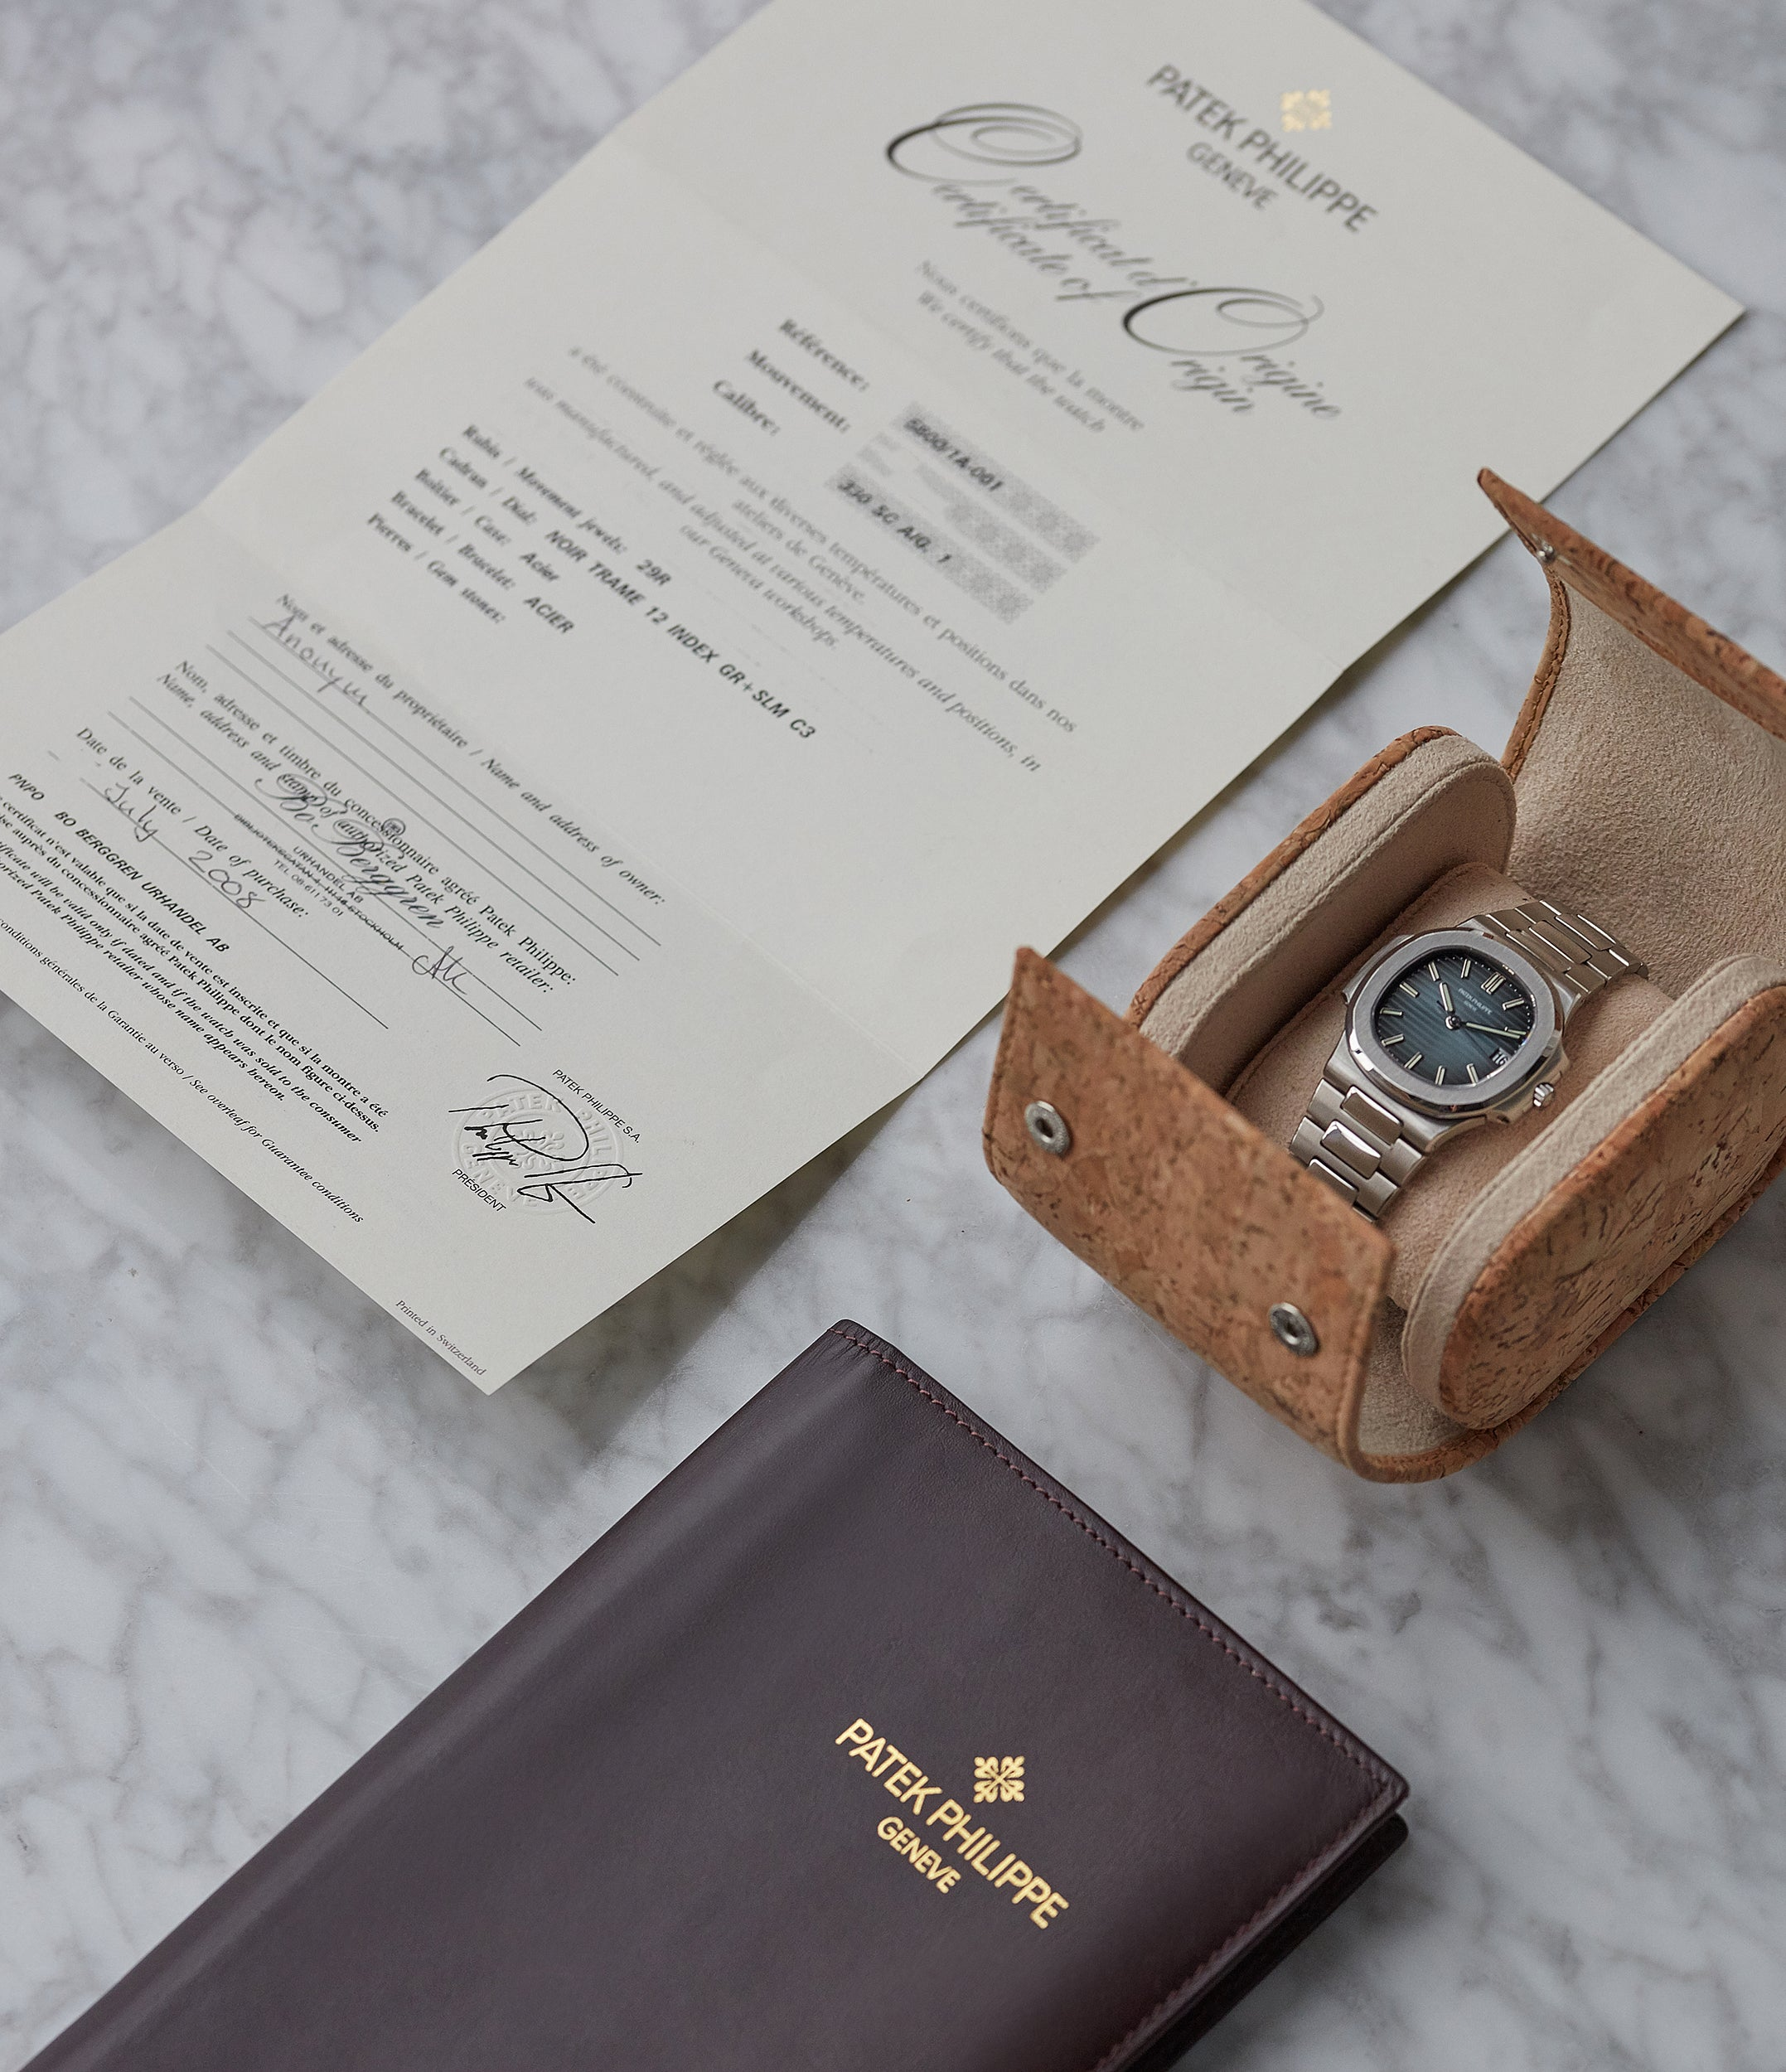 full set Patek Philippe Nautilus 5800/1A-001 steel sport pre-owned watch for sale online at A Collected Man London UK specialist of rare watches